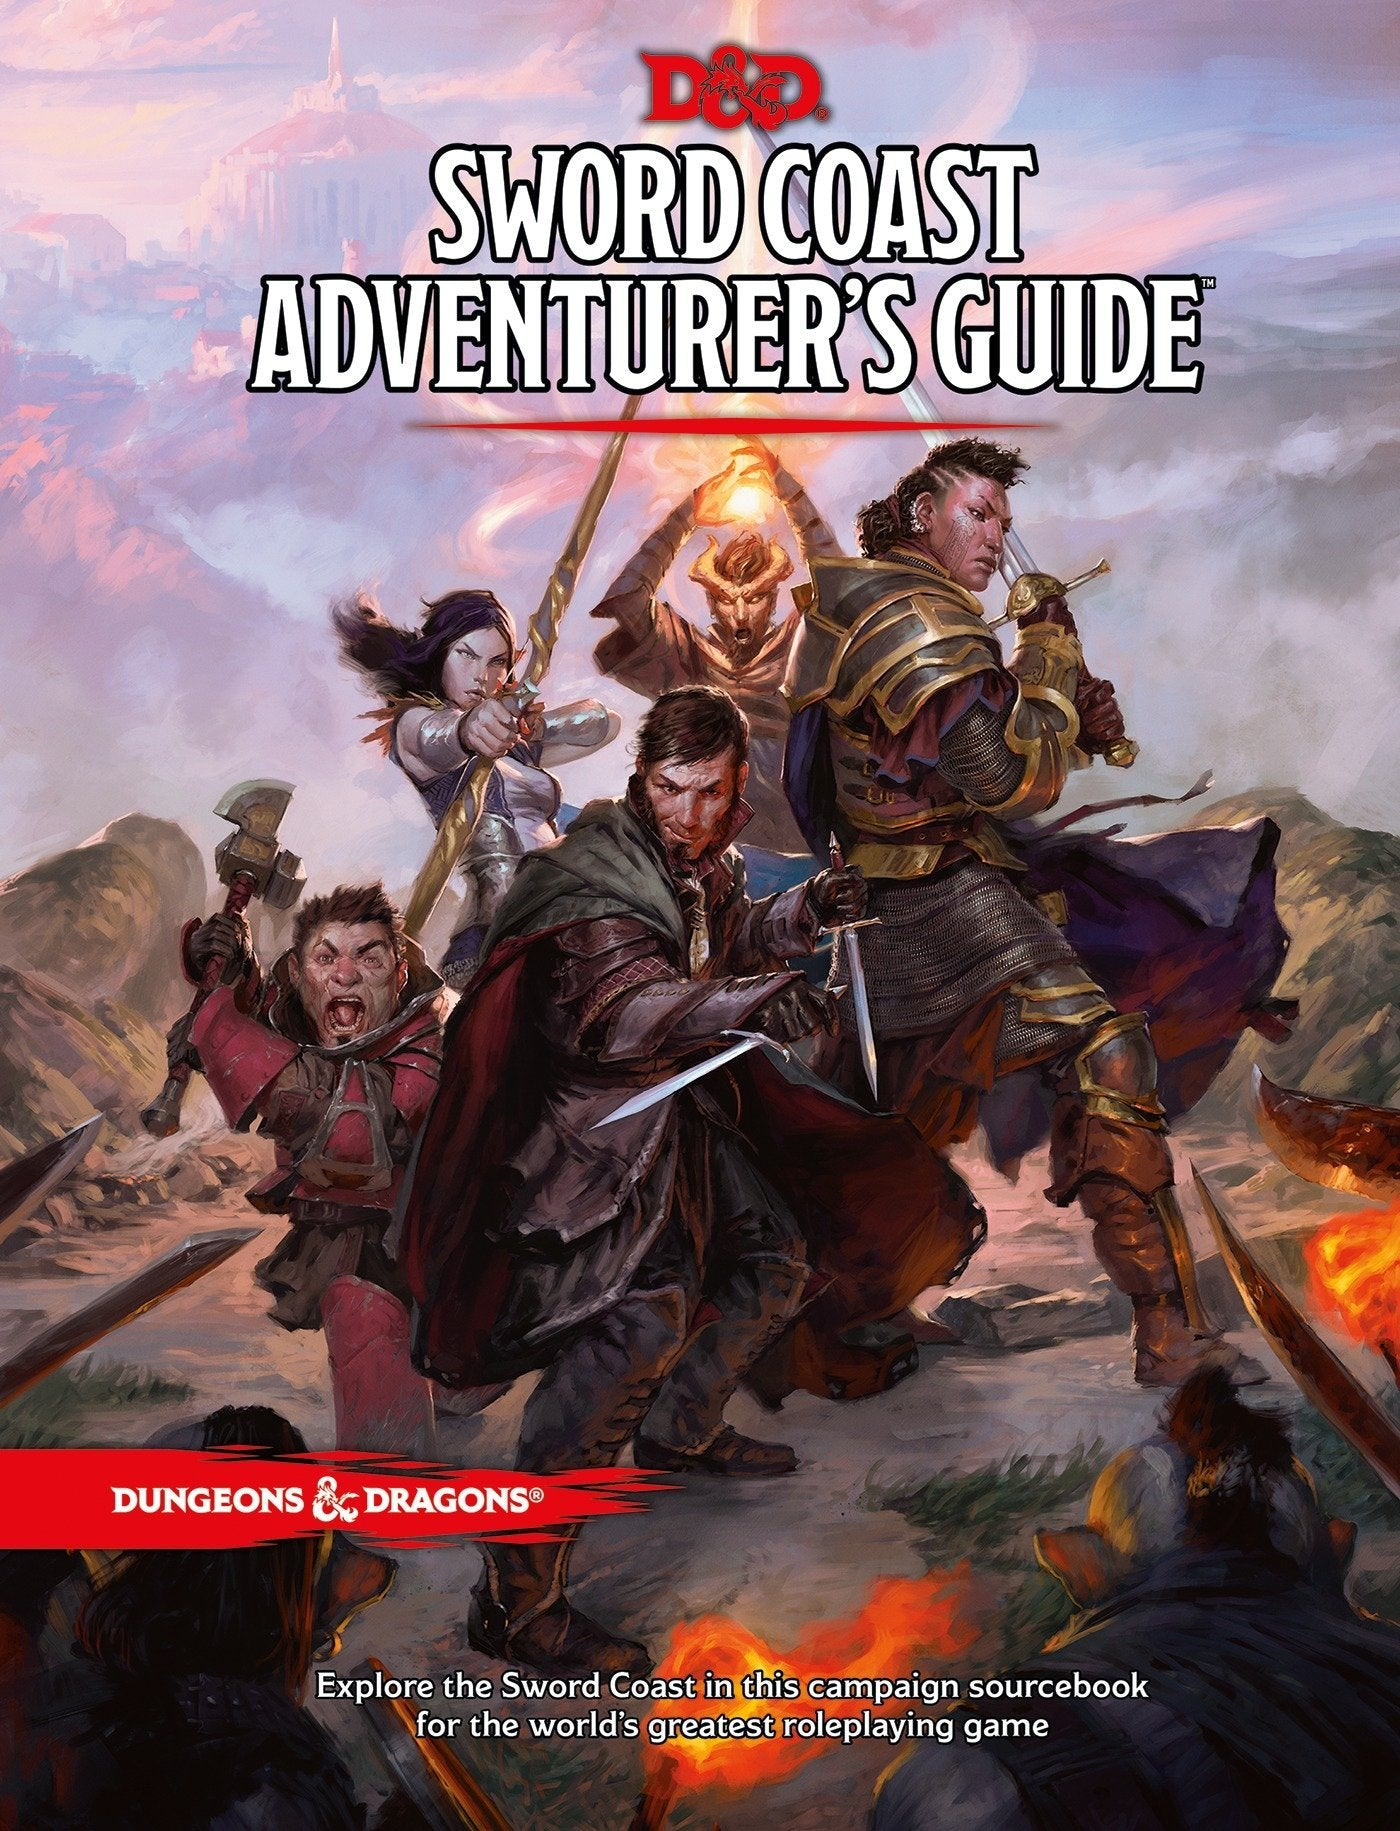 D&D 5.0 SWORD COAST ADVENTURER